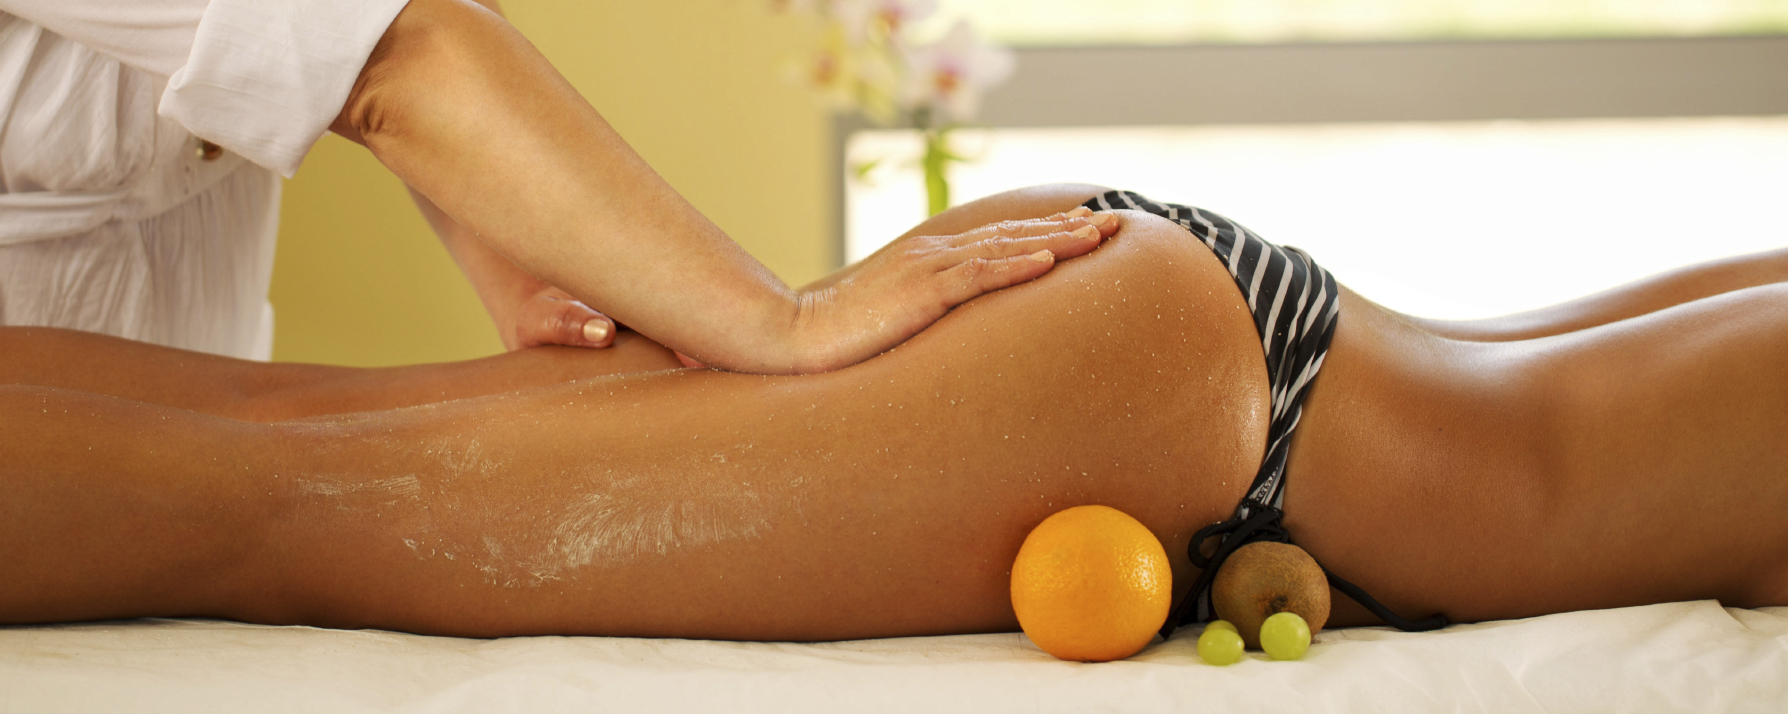 Legs and buttocks massage in the spa center